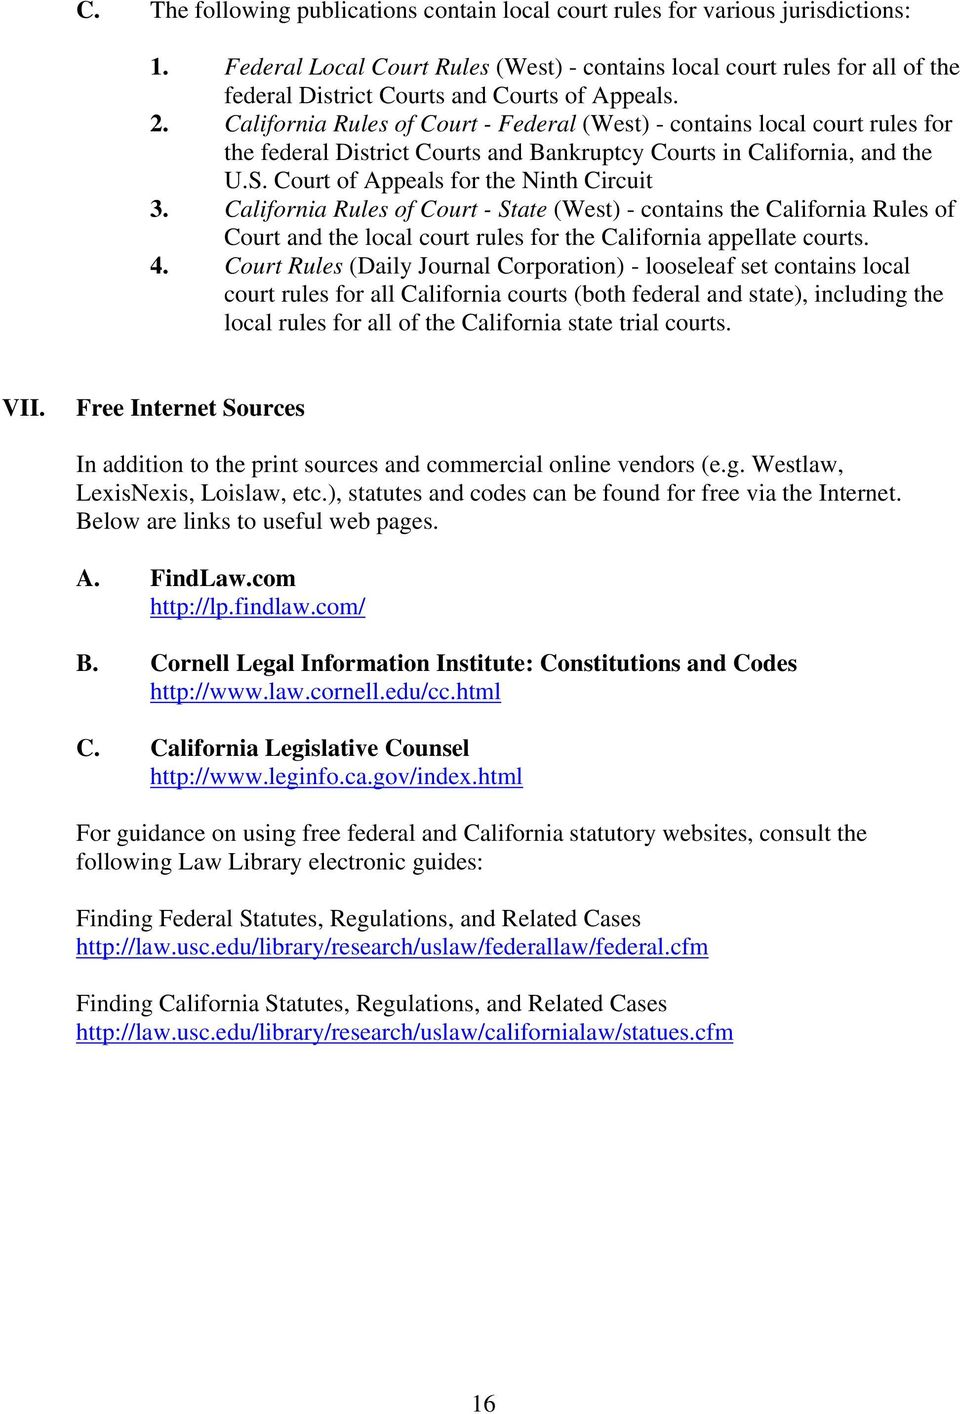 California Rules of Court - Federal (West) - contains local court rules for the federal District Courts and Bankruptcy Courts in California, and the U.S. Court of Appeals for the Ninth Circuit 3.